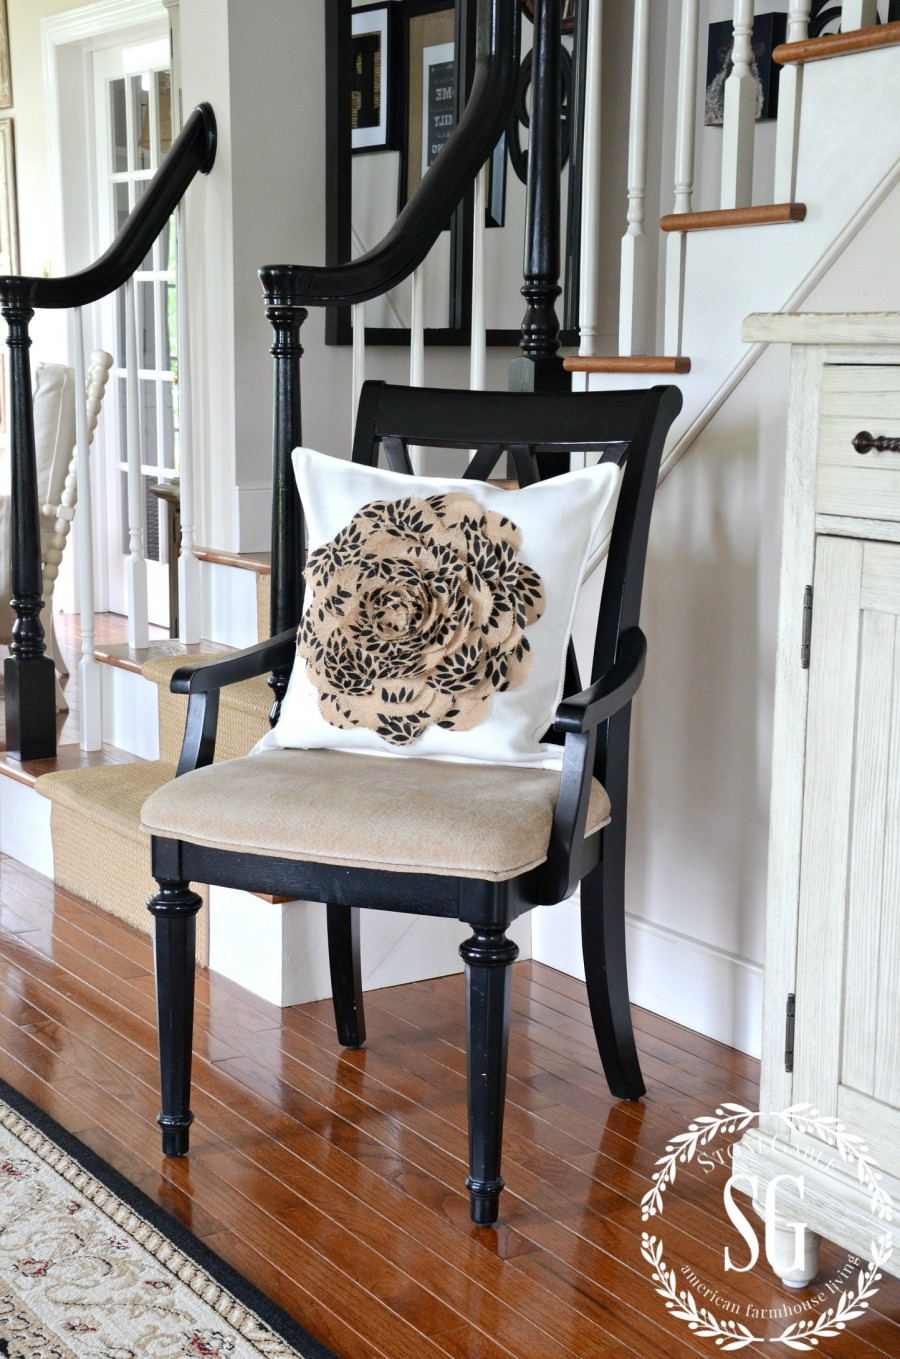 CREATING A WELCOMING FOYER-chair-foyer-stonegableblog.com